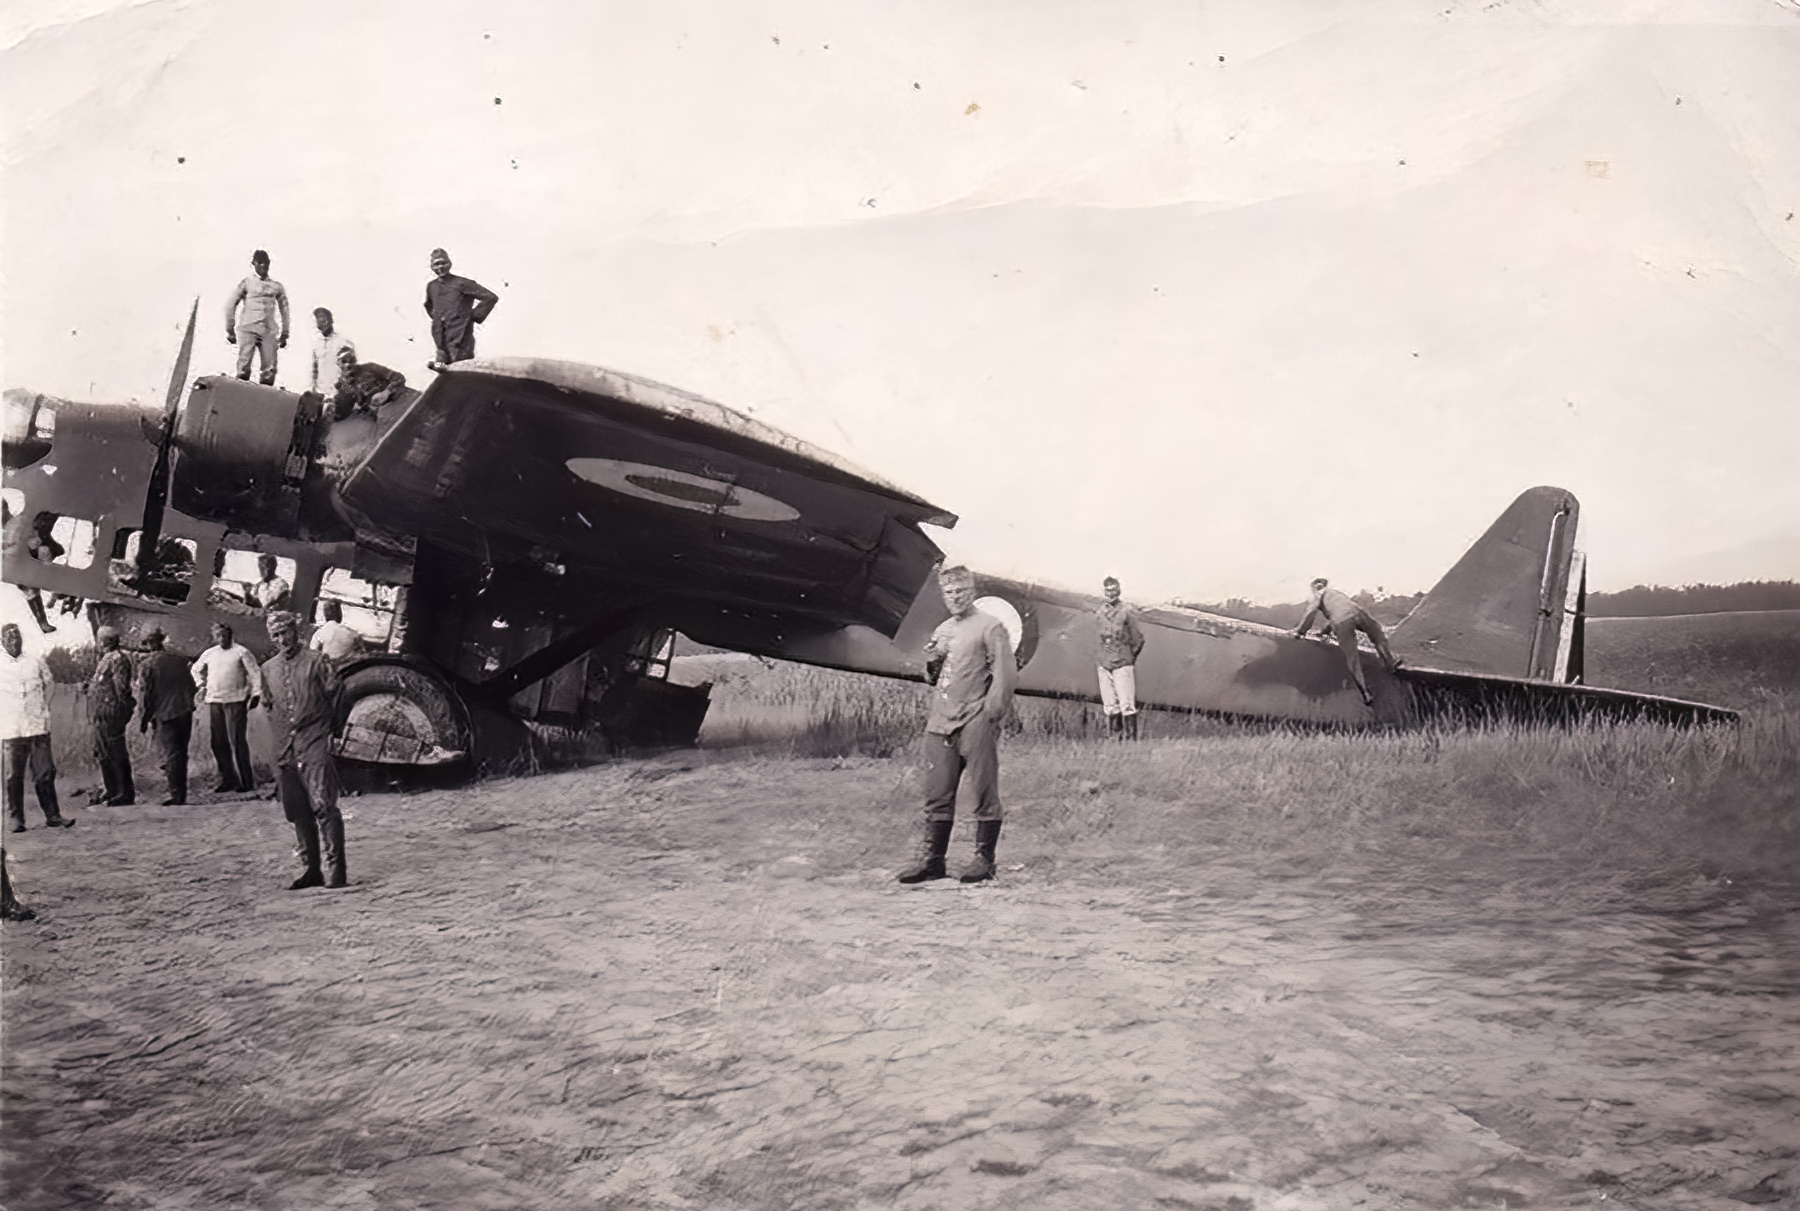 French Airforce Amiot 143 sits abandoned after the fall of France June 1940 ebay 04